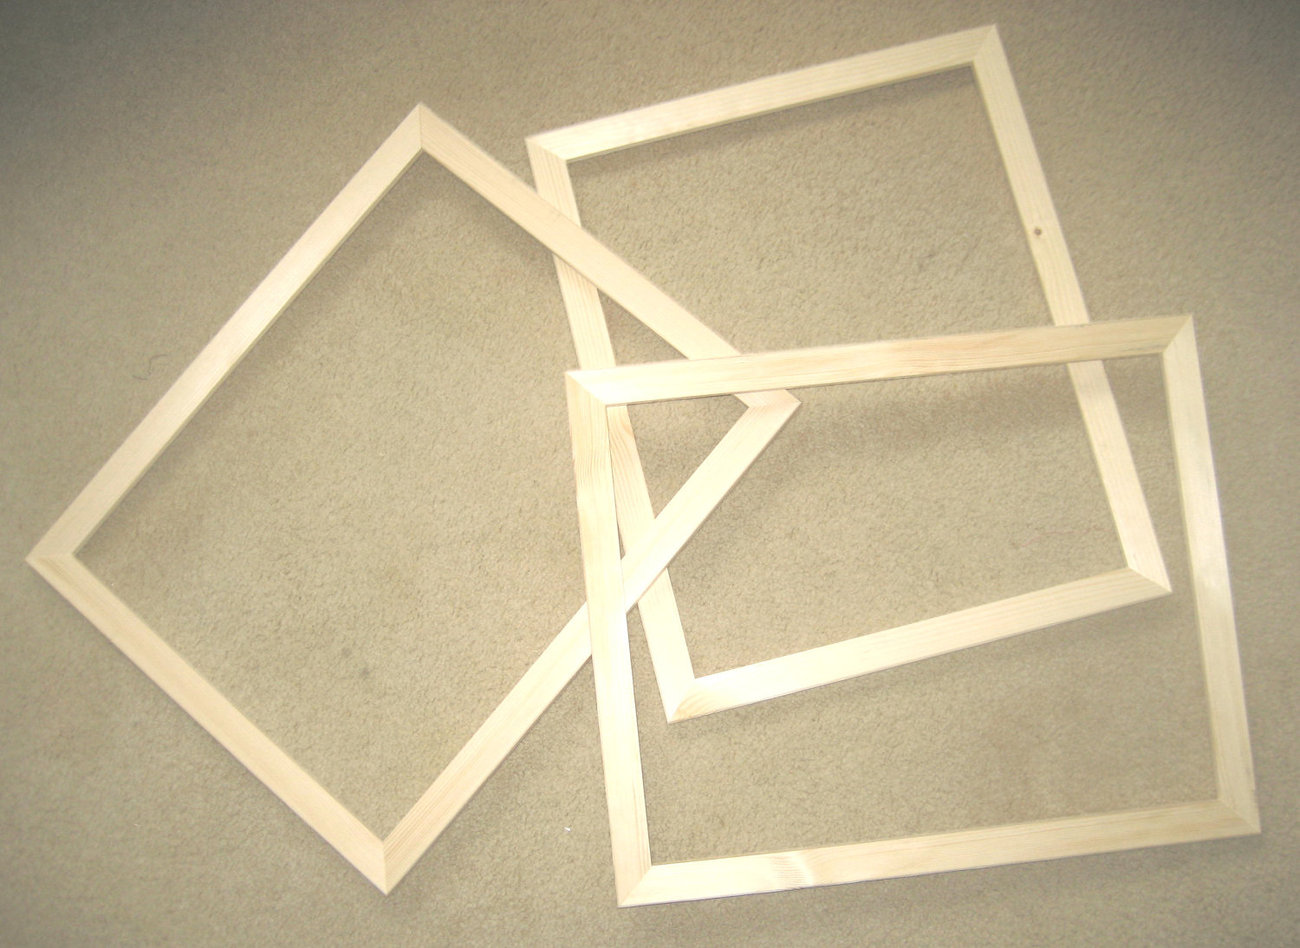 Cheap unfinished wood frames crafts for Unfinished wood frames for crafts